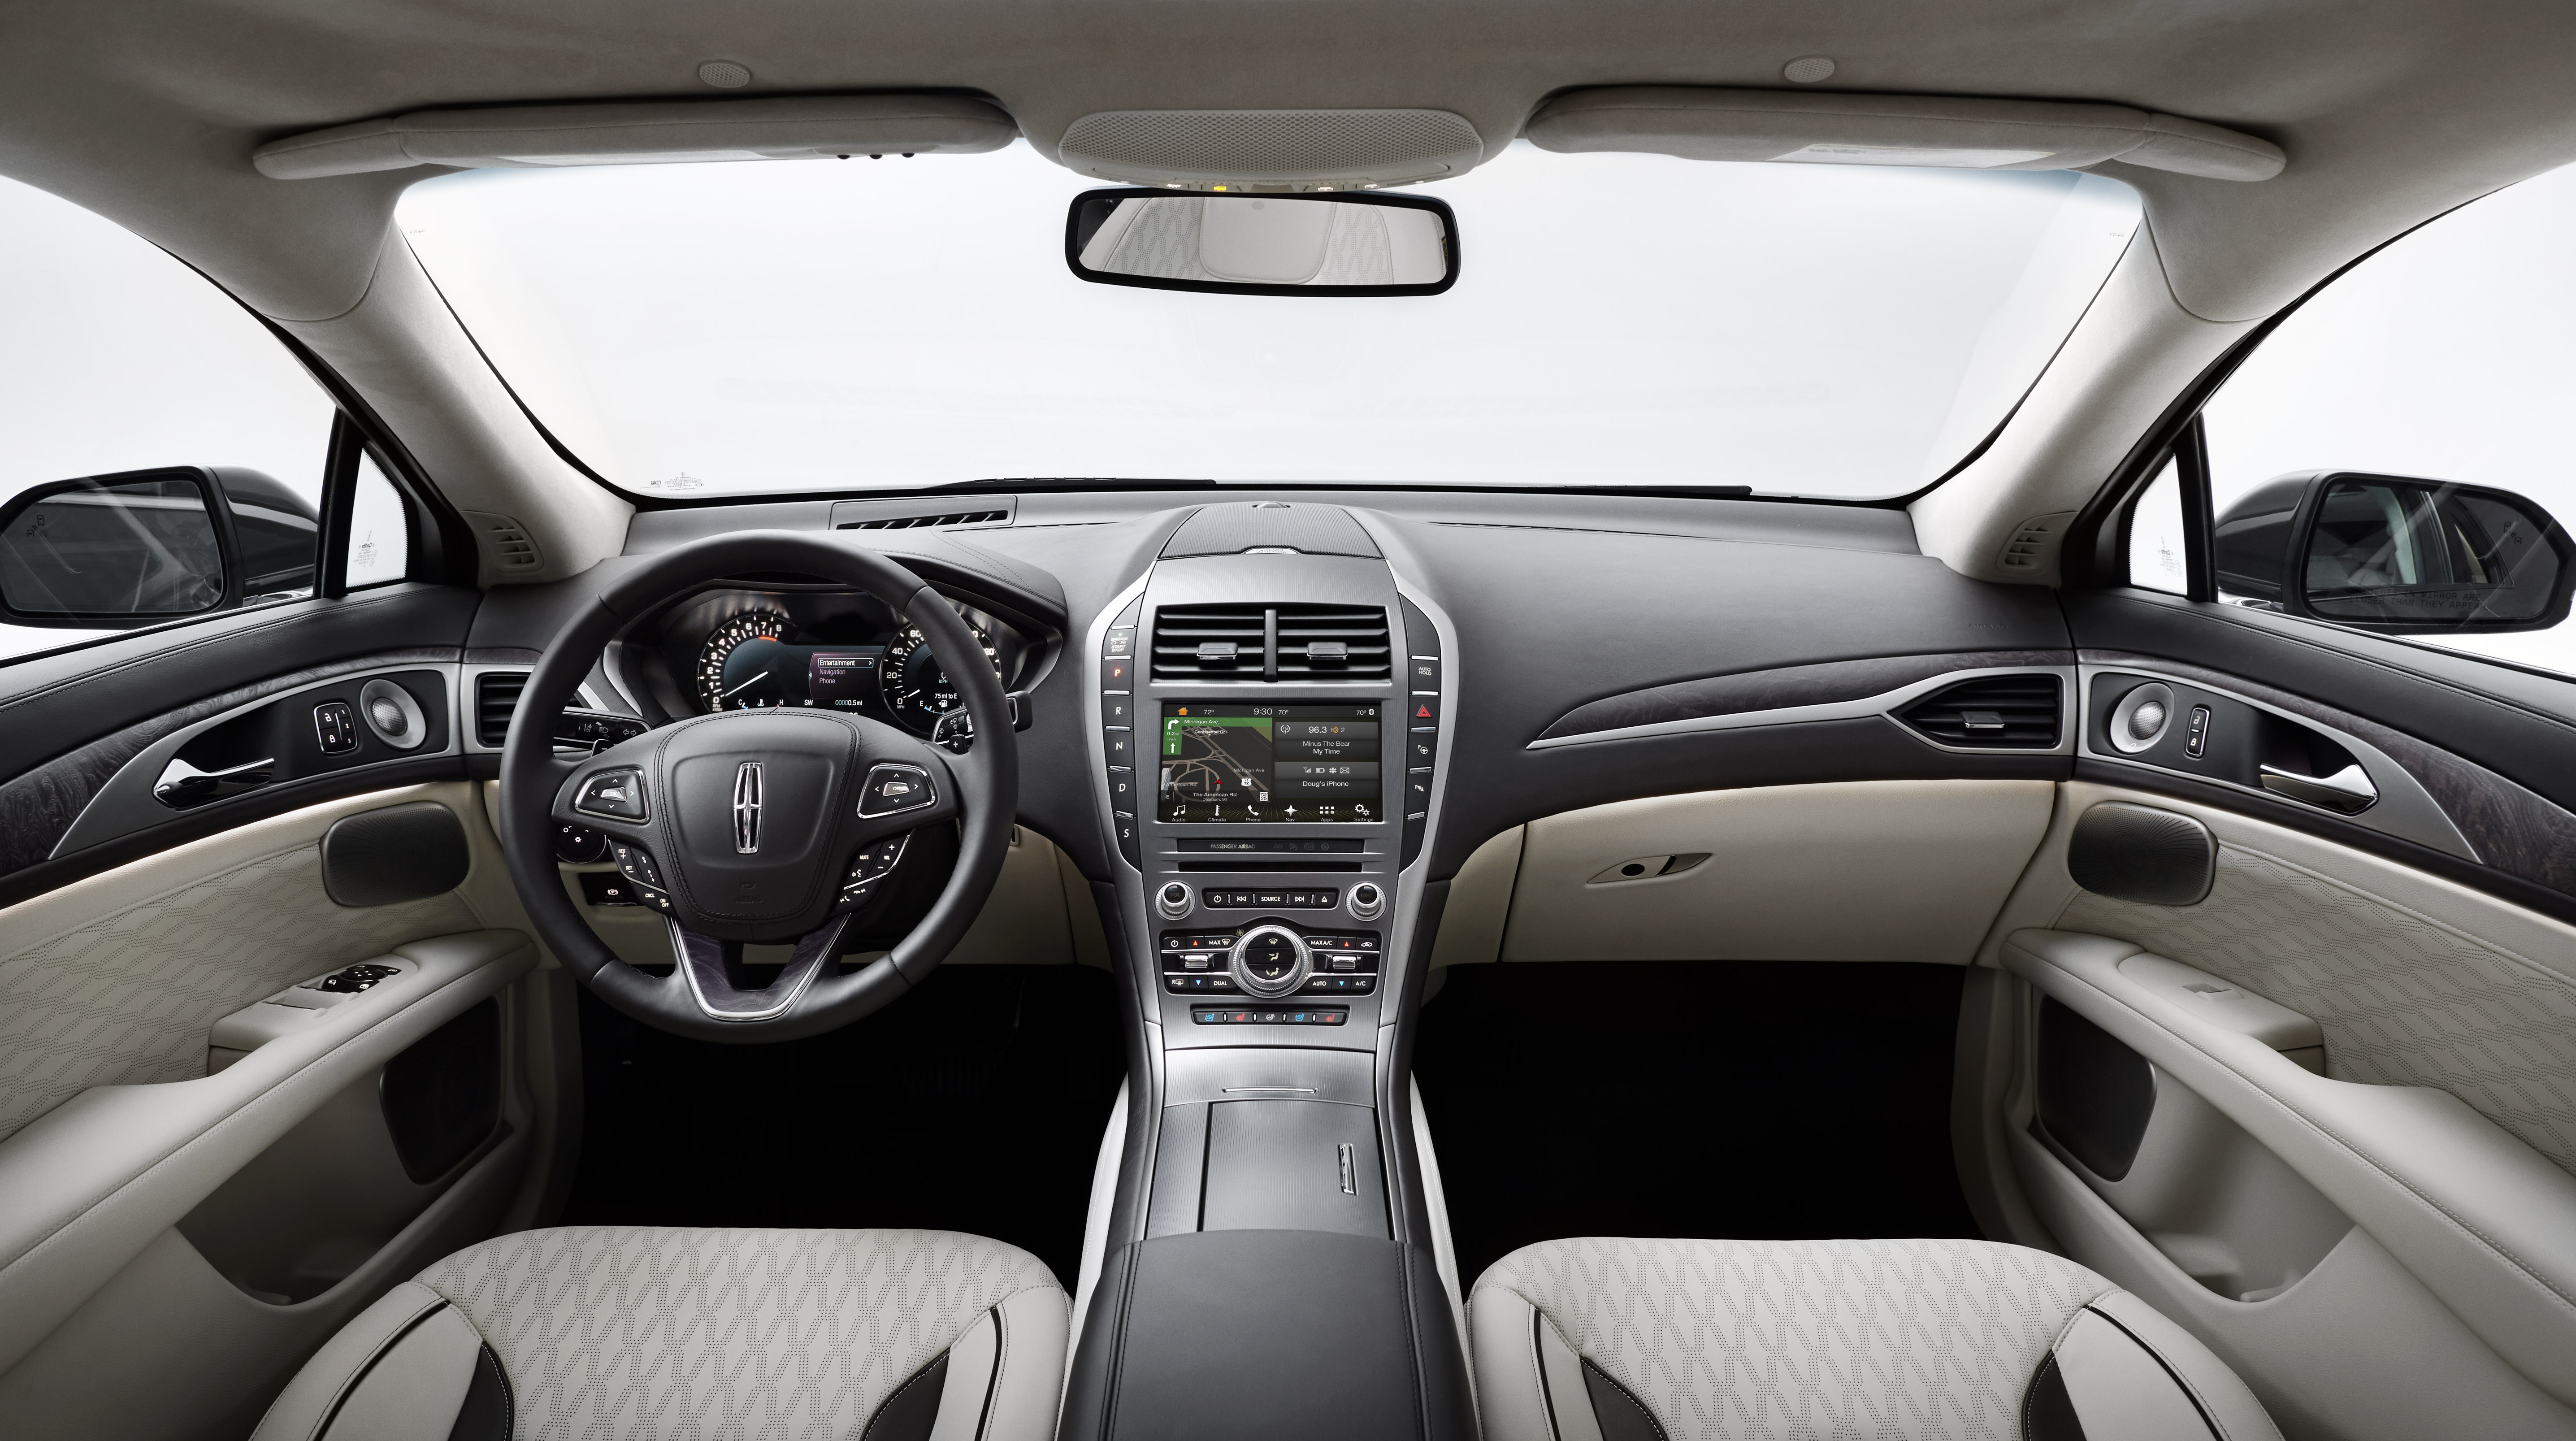 Intuitive driving technologies include available adaptive cruise control with stop-and-go, auto hold, pre-c assist with pedestrian detection, and enhanced park assist make the new Lincoln MKZ driving experience smoother.